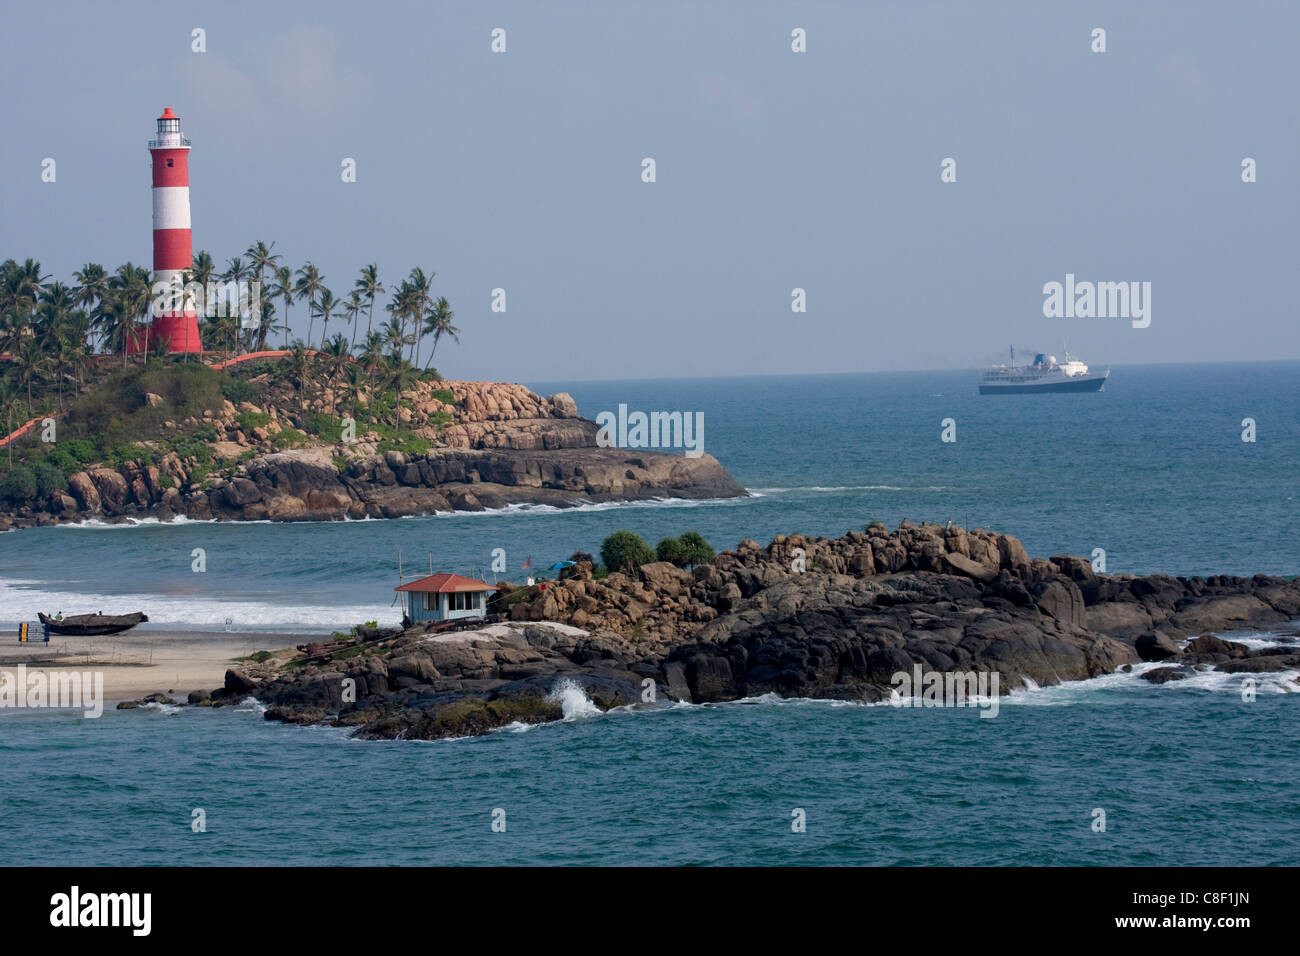 Lighthouse, Vizhinjam, Trivandrum, Kerala, India - Stock Image